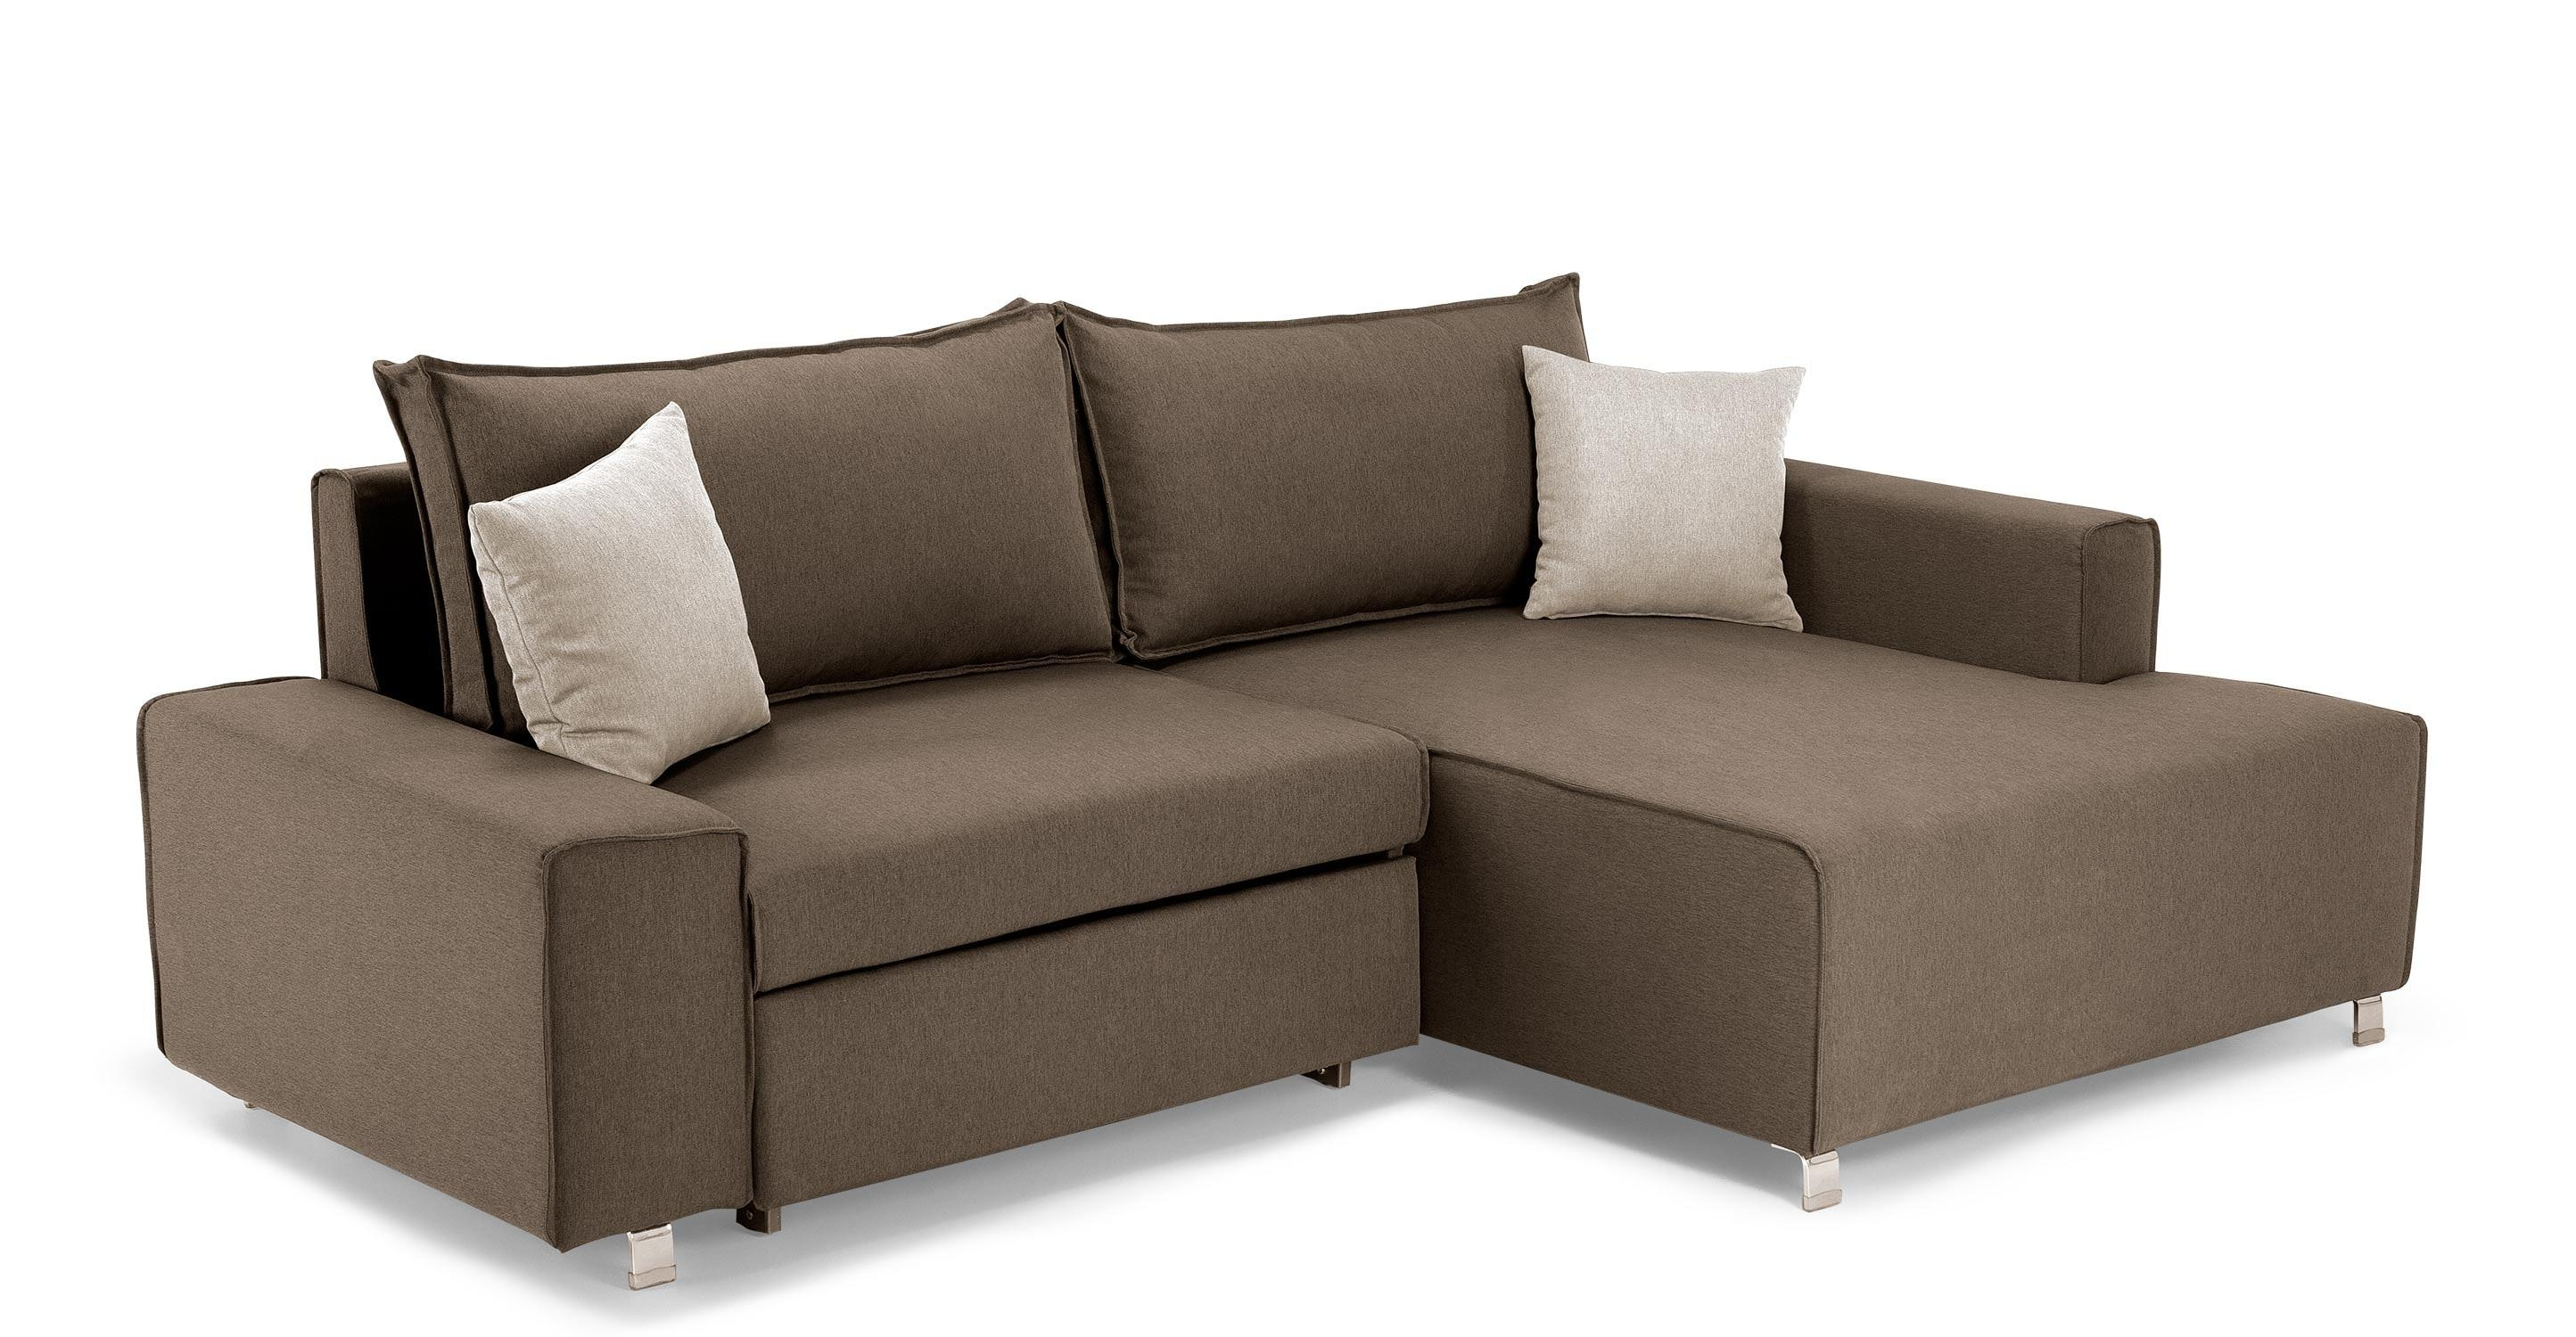 Sofas Center : Corner Sofa Beds Uk Cheap Birminghamcorner For With Regard To Cheap Corner Sofa Beds (Image 16 of 20)